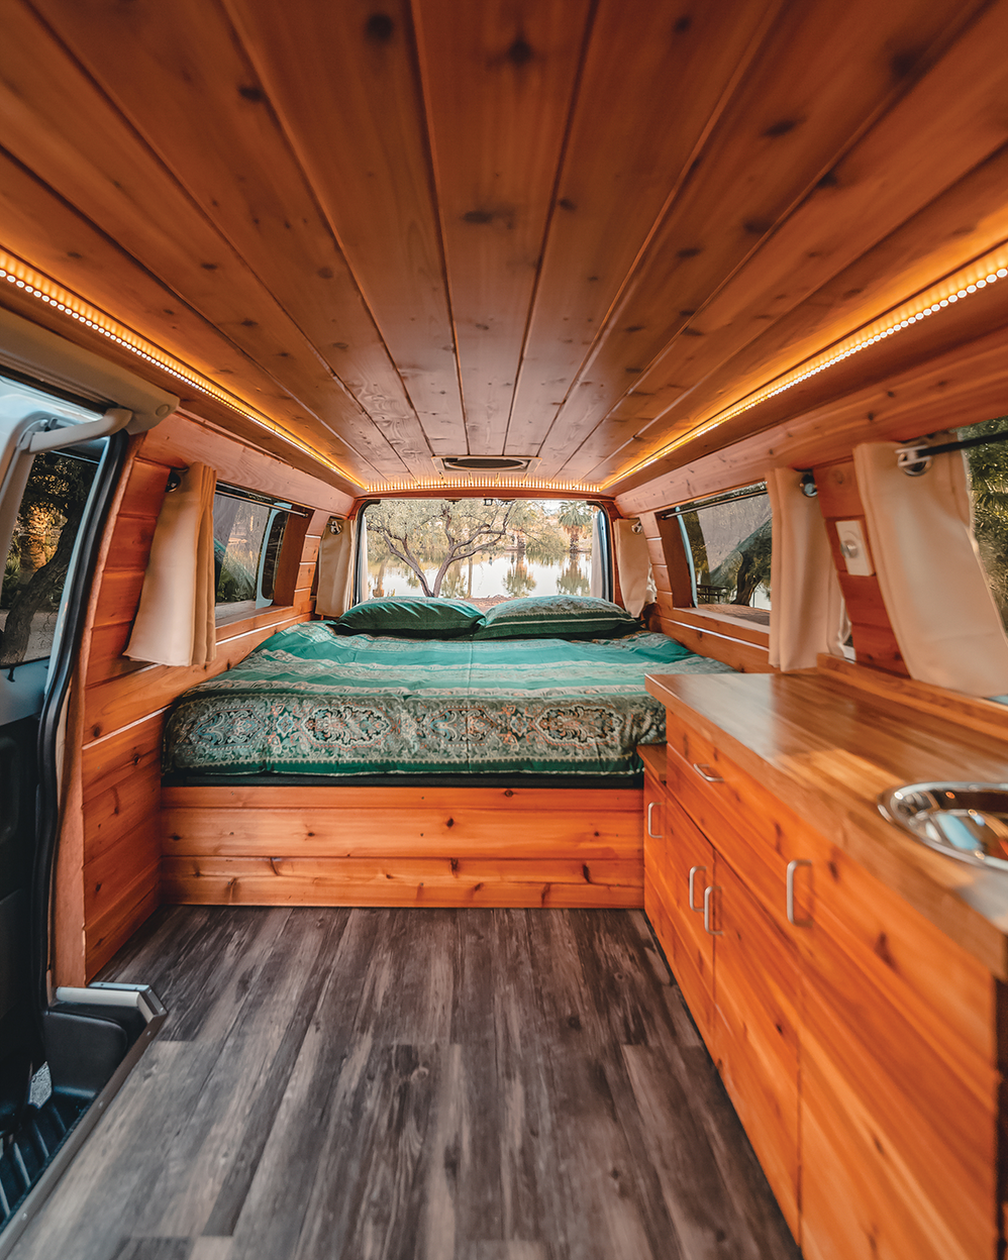 21 Ideas For Your Camper Interior Design - Outdoordecorsm